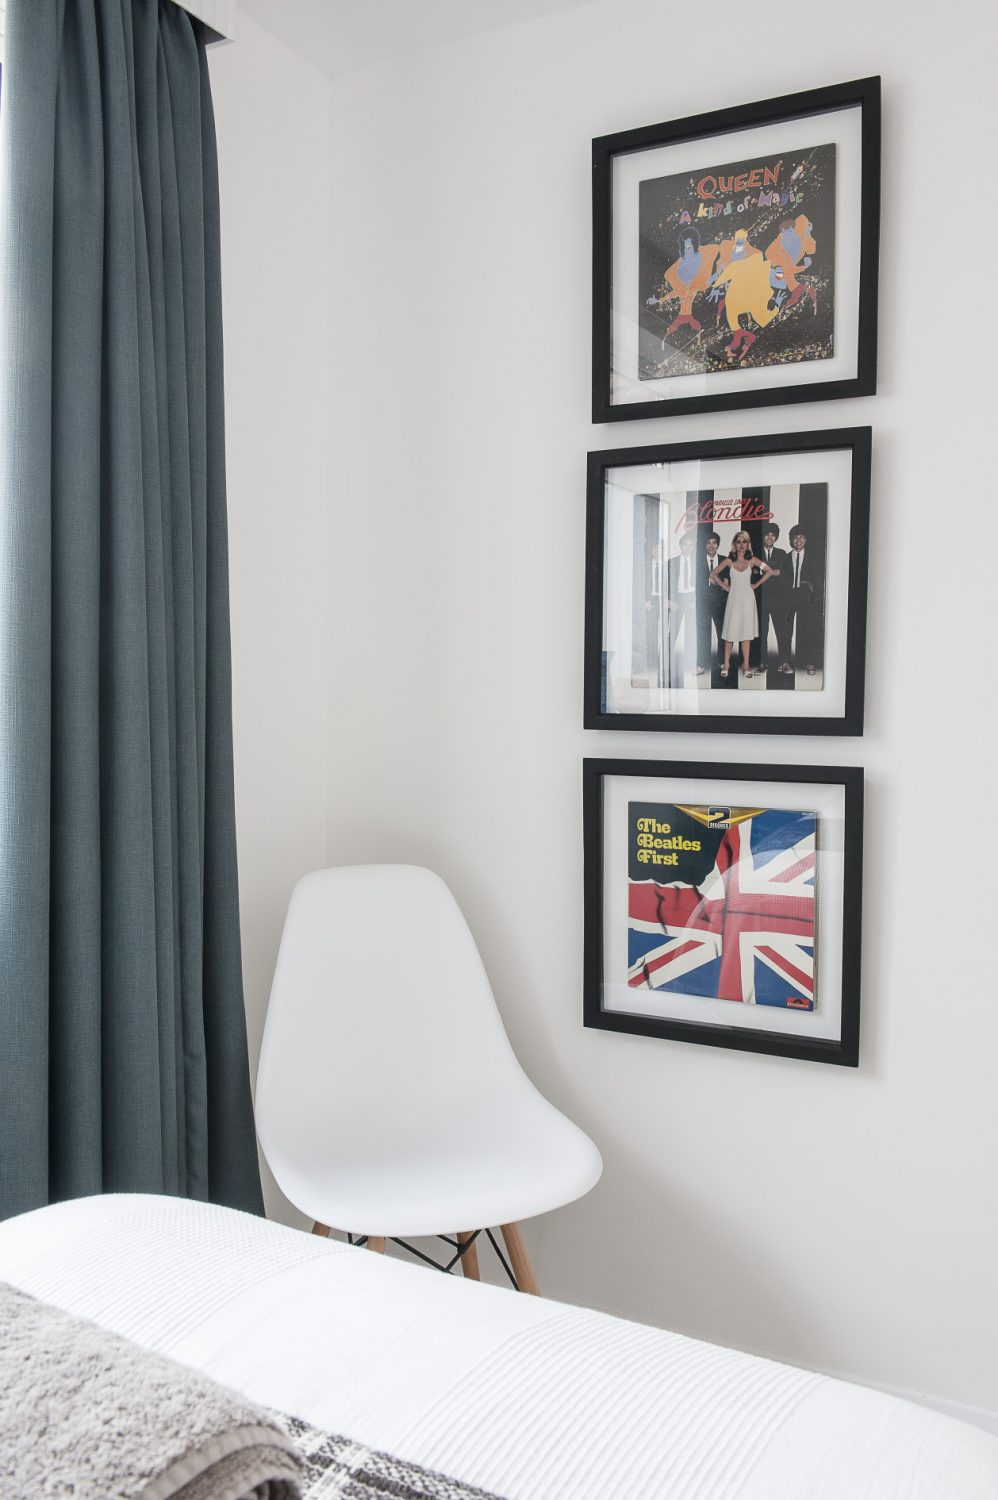 A trio of framed album covers are mounted onto one wall